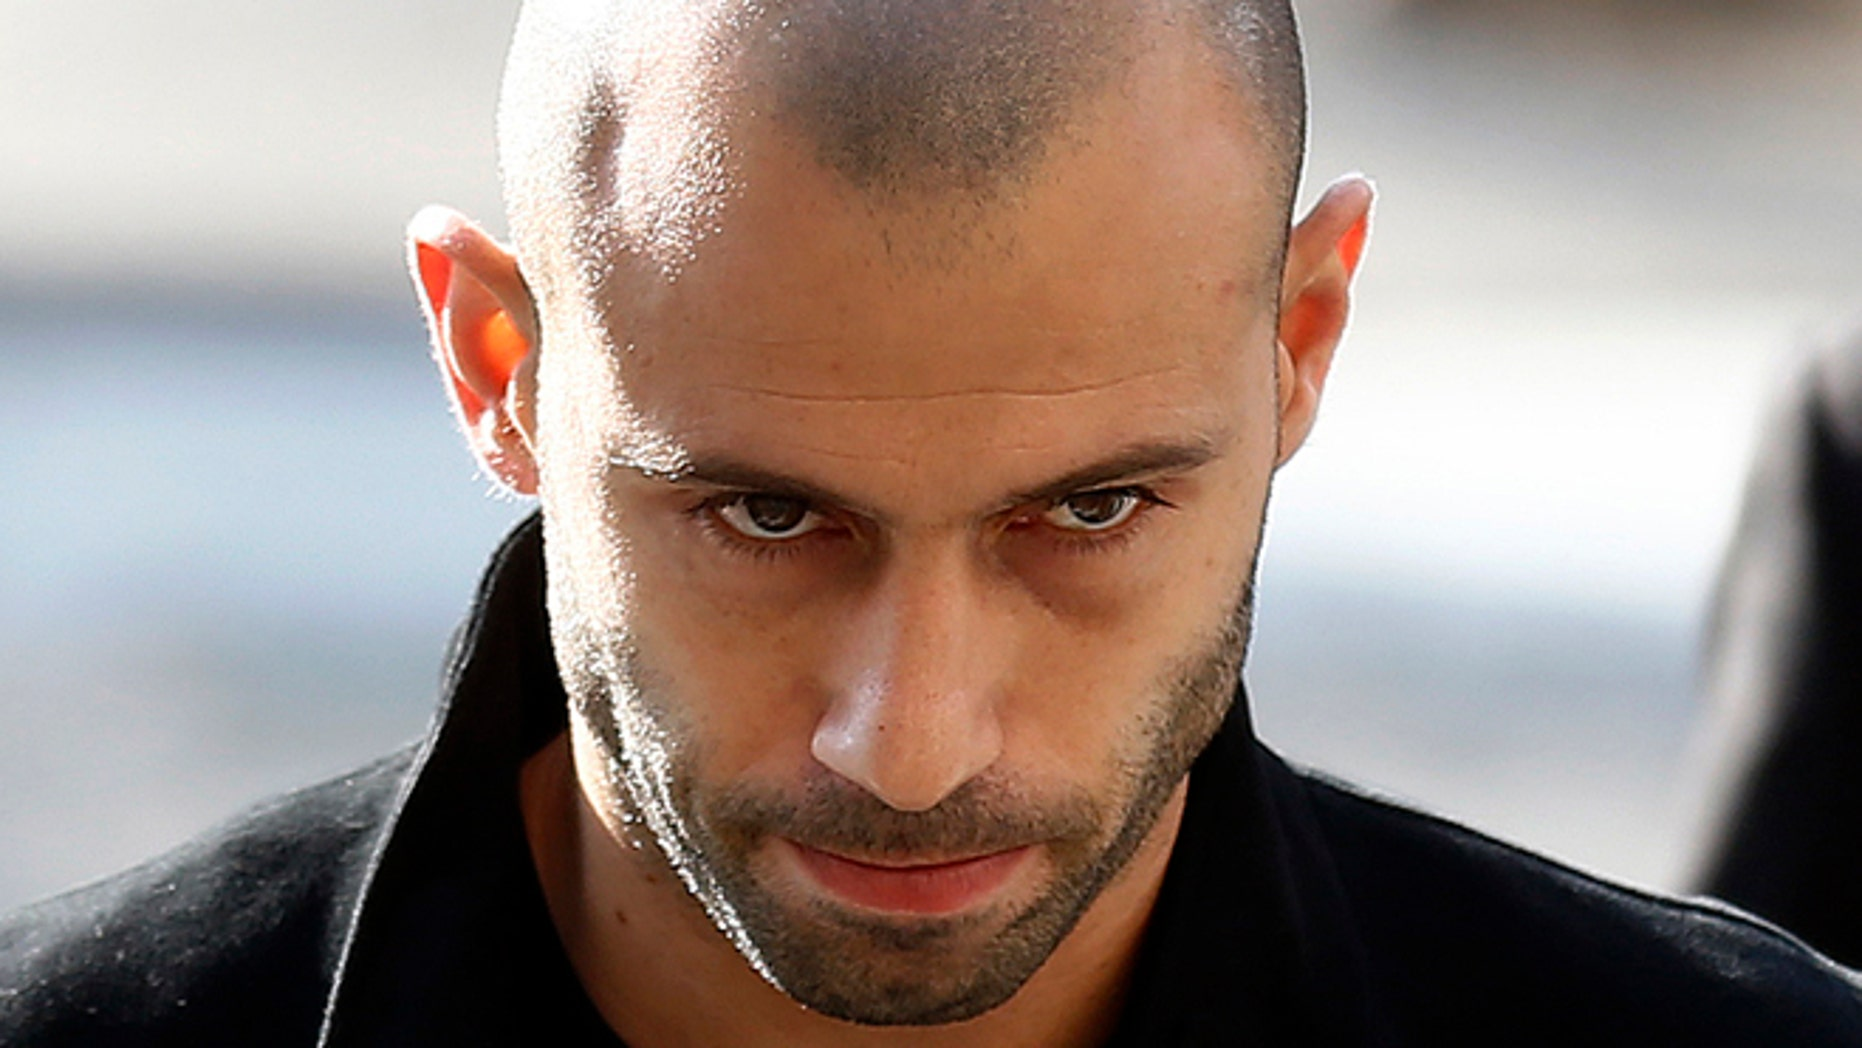 FC Barcelona defender Javier Mascherano, from Argentina, leaves the court after answering questions in a tax fraud case in Barcelona, Spain, Thursday, Jan. 21, 2016. Mascherano has accepted a one-year prison sentence for not properly paying taxes in Spain but is not expected to face any jail time. The sentencing on Thursday came nearly three months after the Barcelona defender had reached a deal with prosecutors and the attorneyís office for failing to pay nearly 1.5 million euros ($1.6 million) in taxes for 2011 and 2012.  (AP Photo/Manu Fernandez)